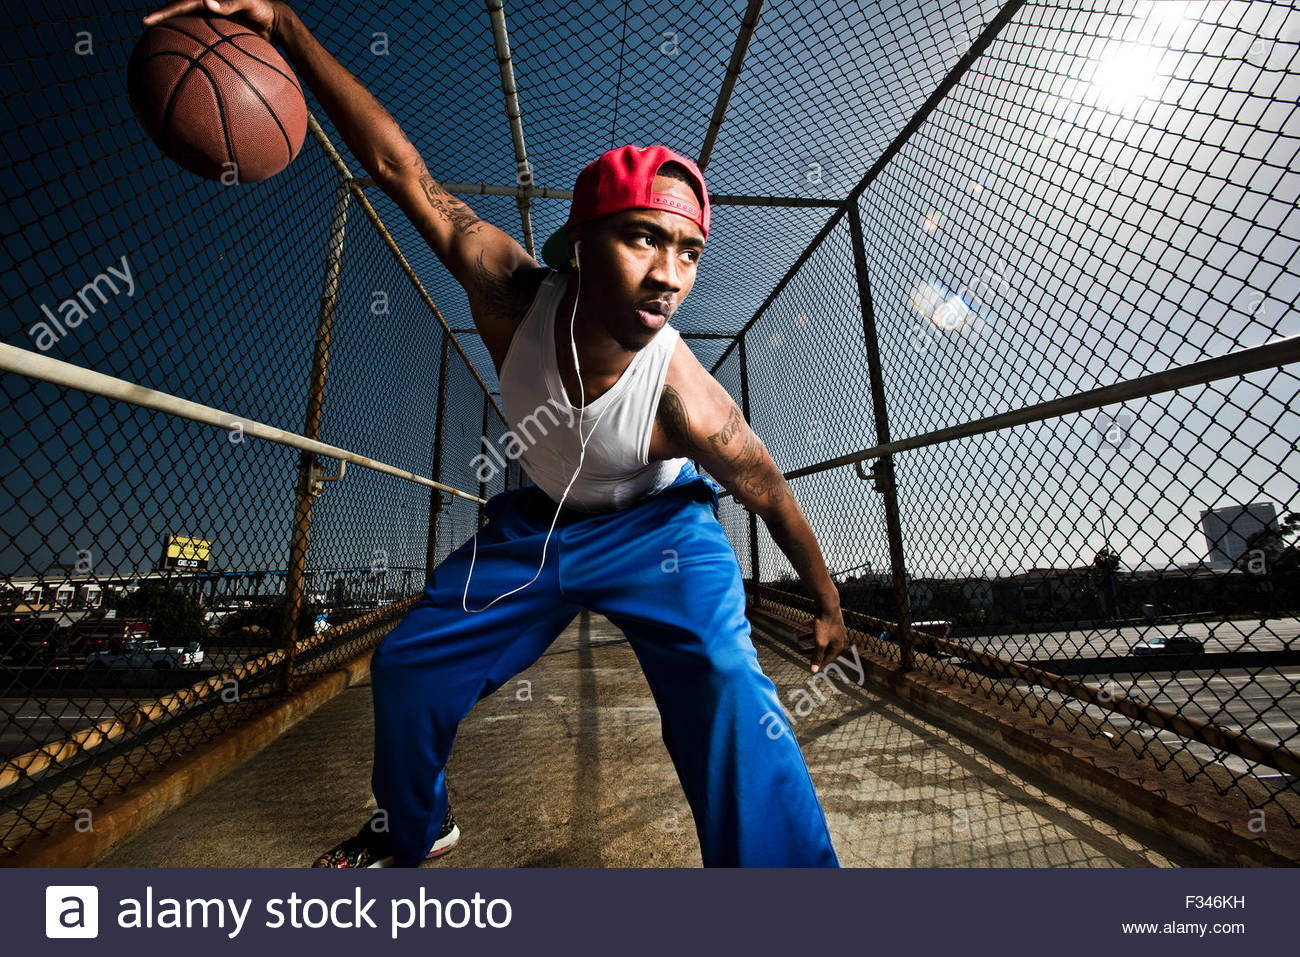 A basketball player dibbling a ball. - Stock Image